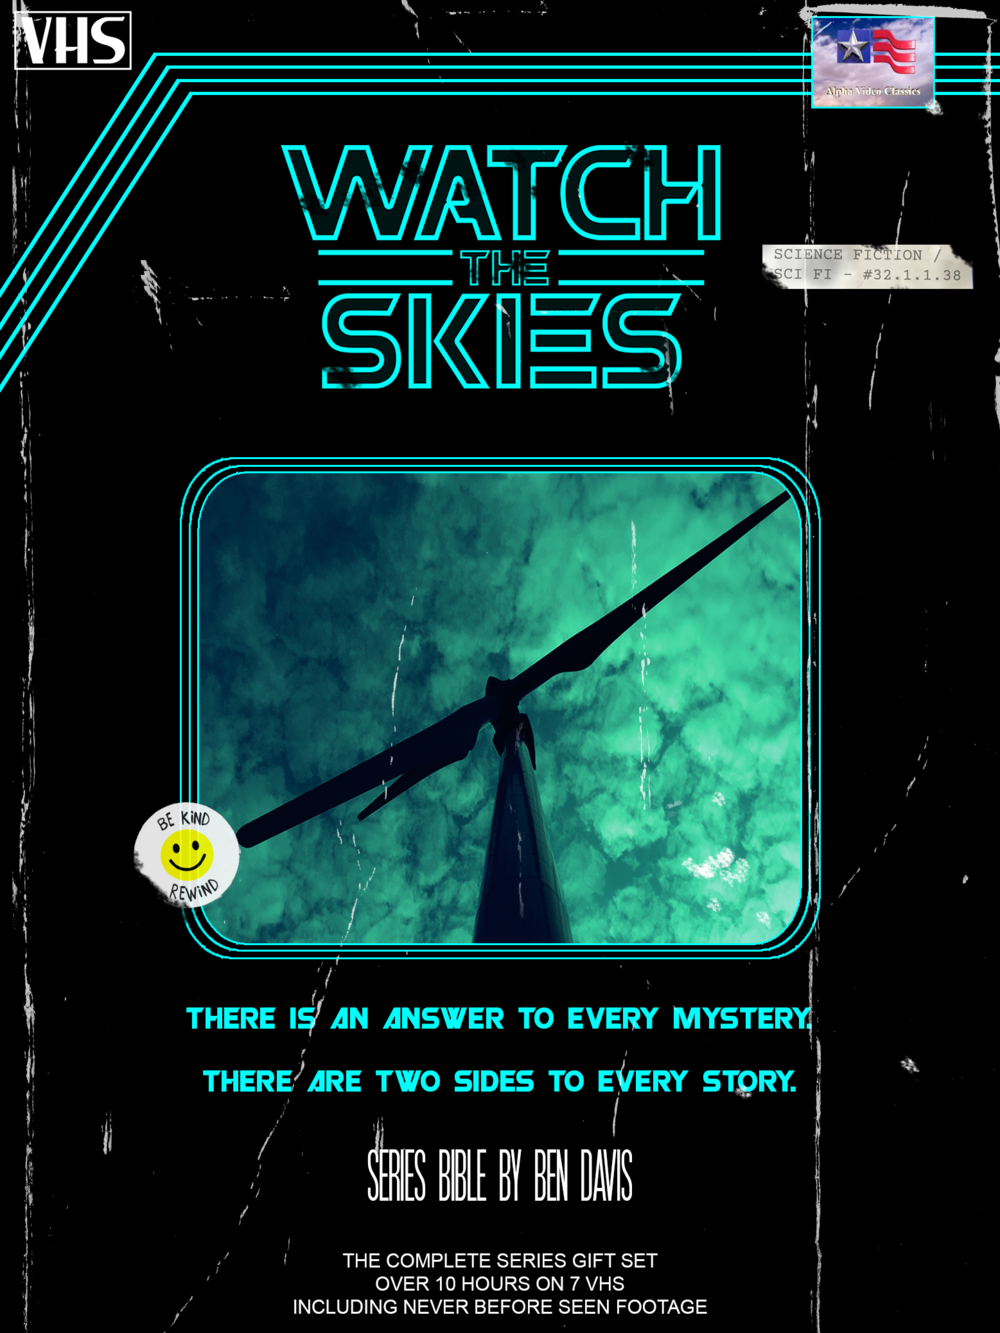 WATCH THE SKIES - PILOT | SCI FI • DRAMA • MYSTERYLOGLINE: A decade after her father's public and mysterious suicide, CARIS struggles to ditch the identity attached to her now infamous last name. However, when a mysterious drifter reveals the shocking truth about her father's death, Caris begins investigating a new world of paranormal mysteries where the cost for truth has never been higher.